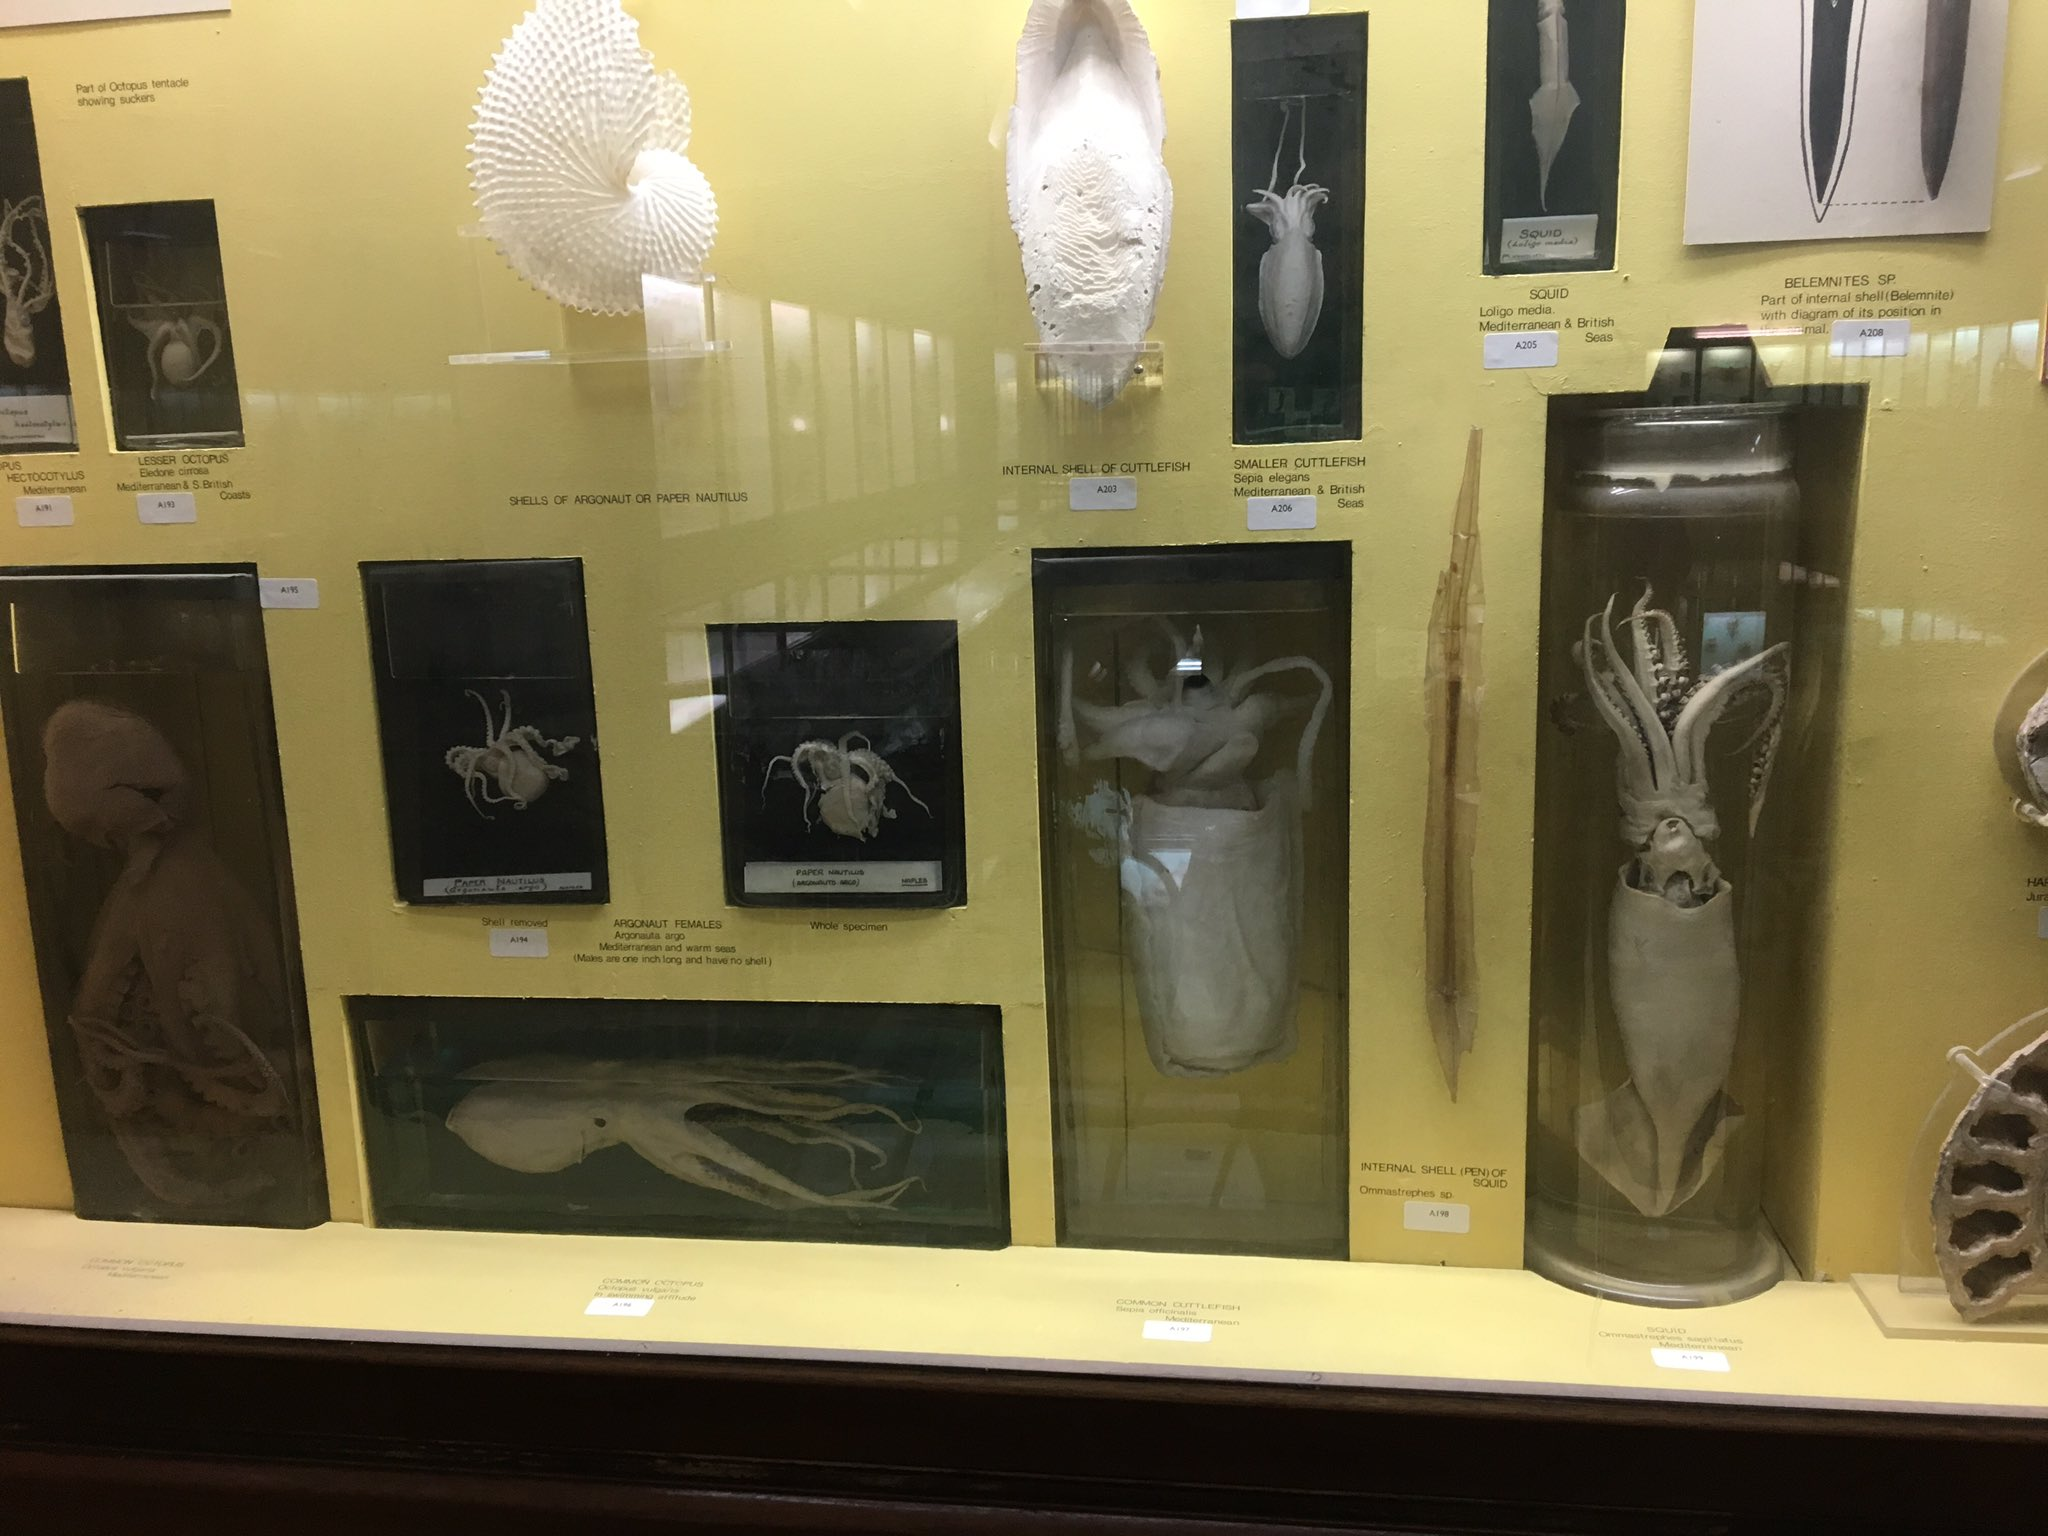 What is dead may never die. House Greyjoy is well represented by our collection of squid and ocotopods RT if you're Greyjoy #Takeoverday https://t.co/jy8eLS80wP